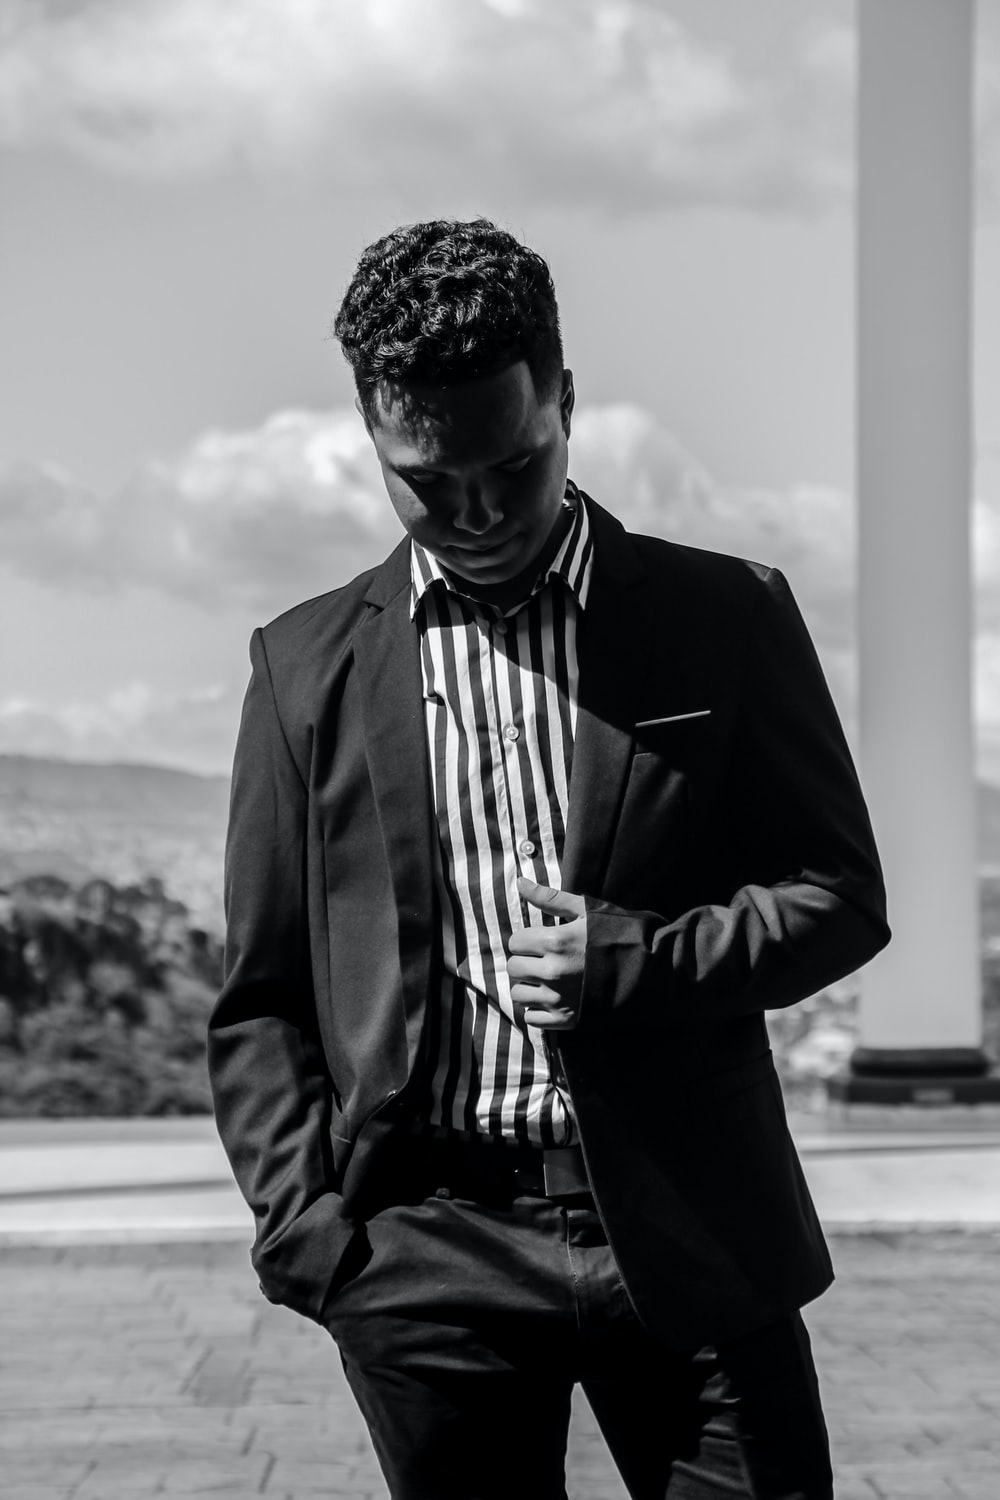 greyscale photo of man wearing tuxedo